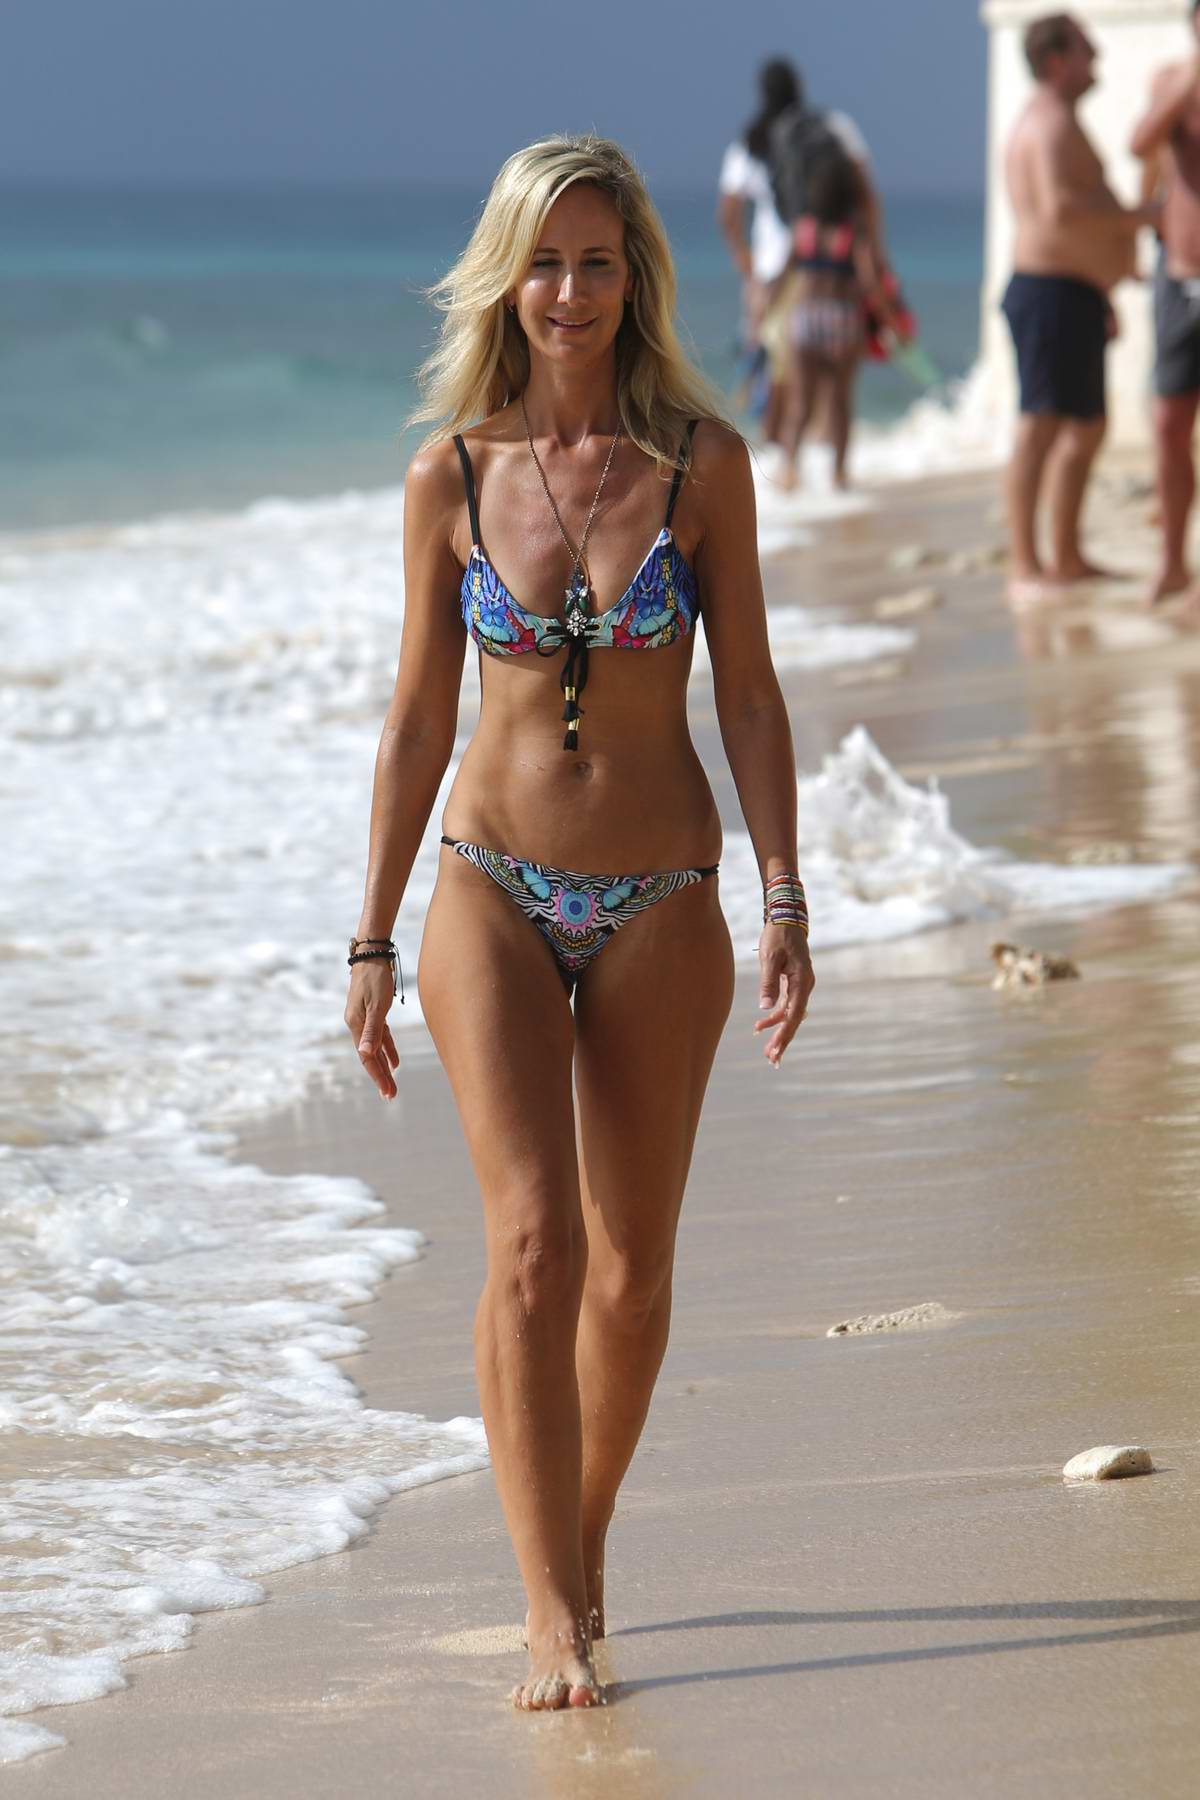 Bikini Victoria Hervey nude (23 photos), Sexy, Leaked, Boobs, swimsuit 2020